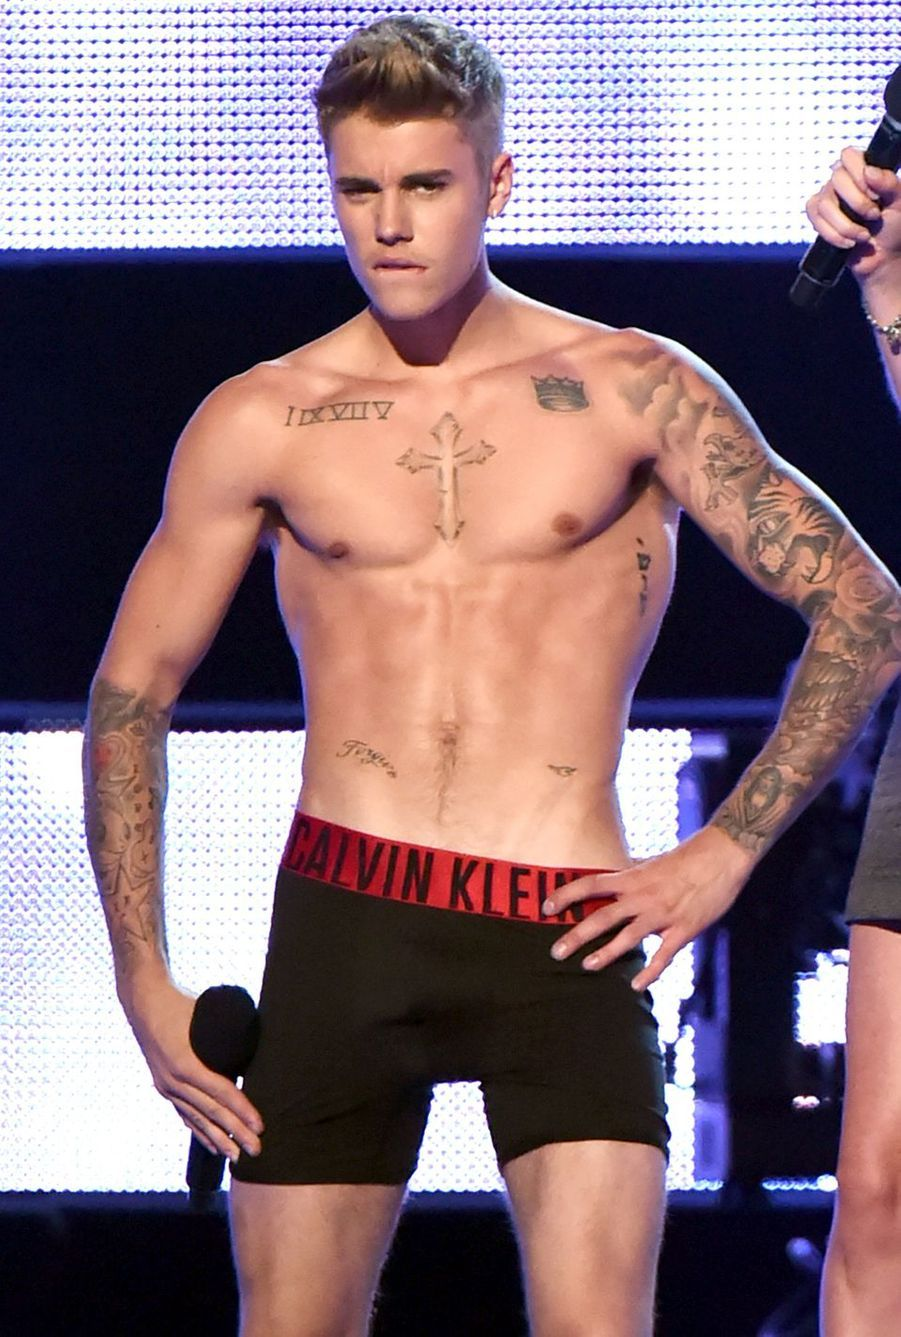 Justin Bieber lors des Fashion Rocks en septembre 2014 à New York